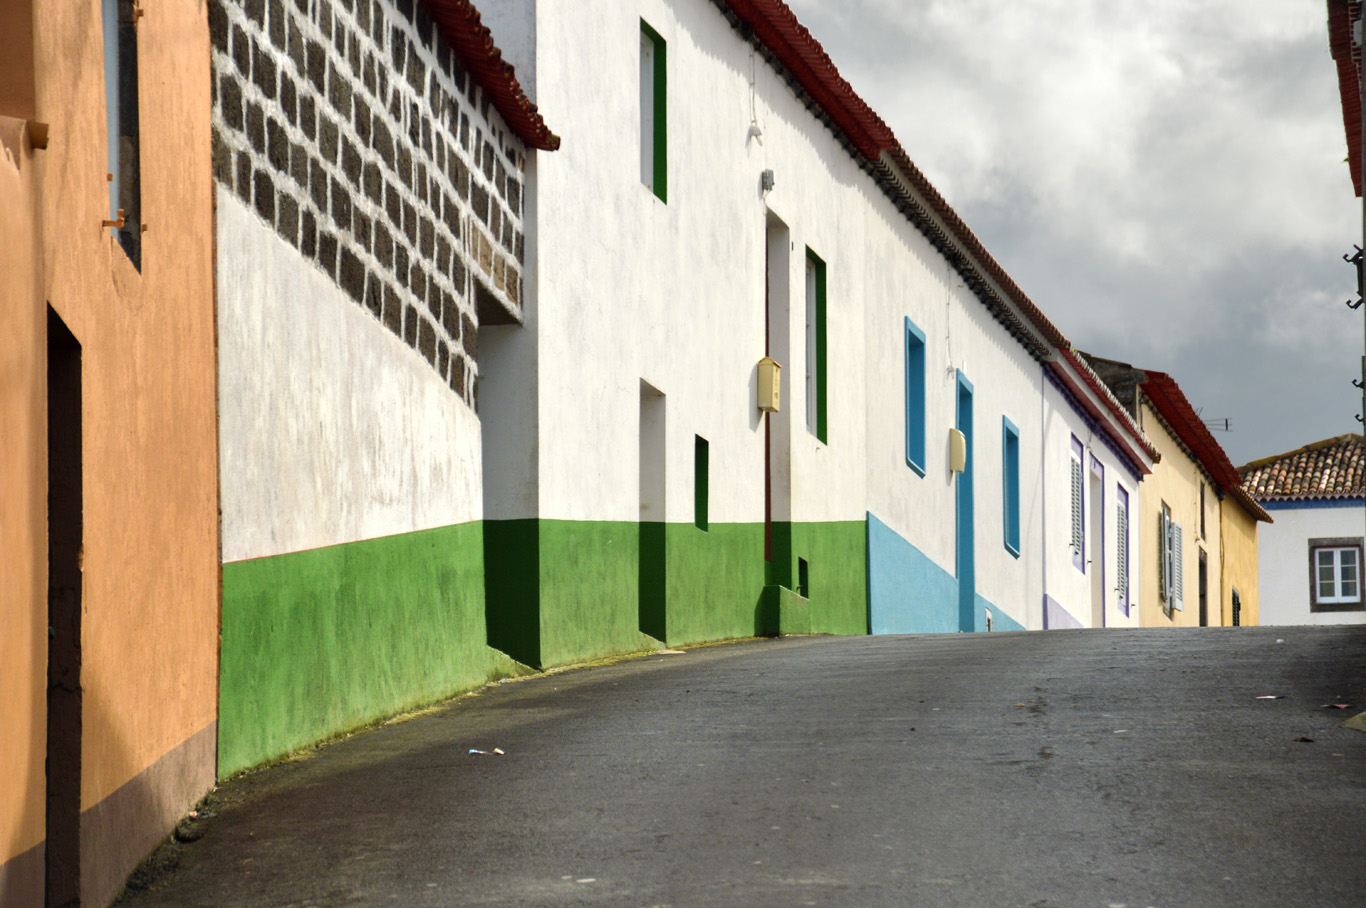 One of the villages on the way to Nordeste